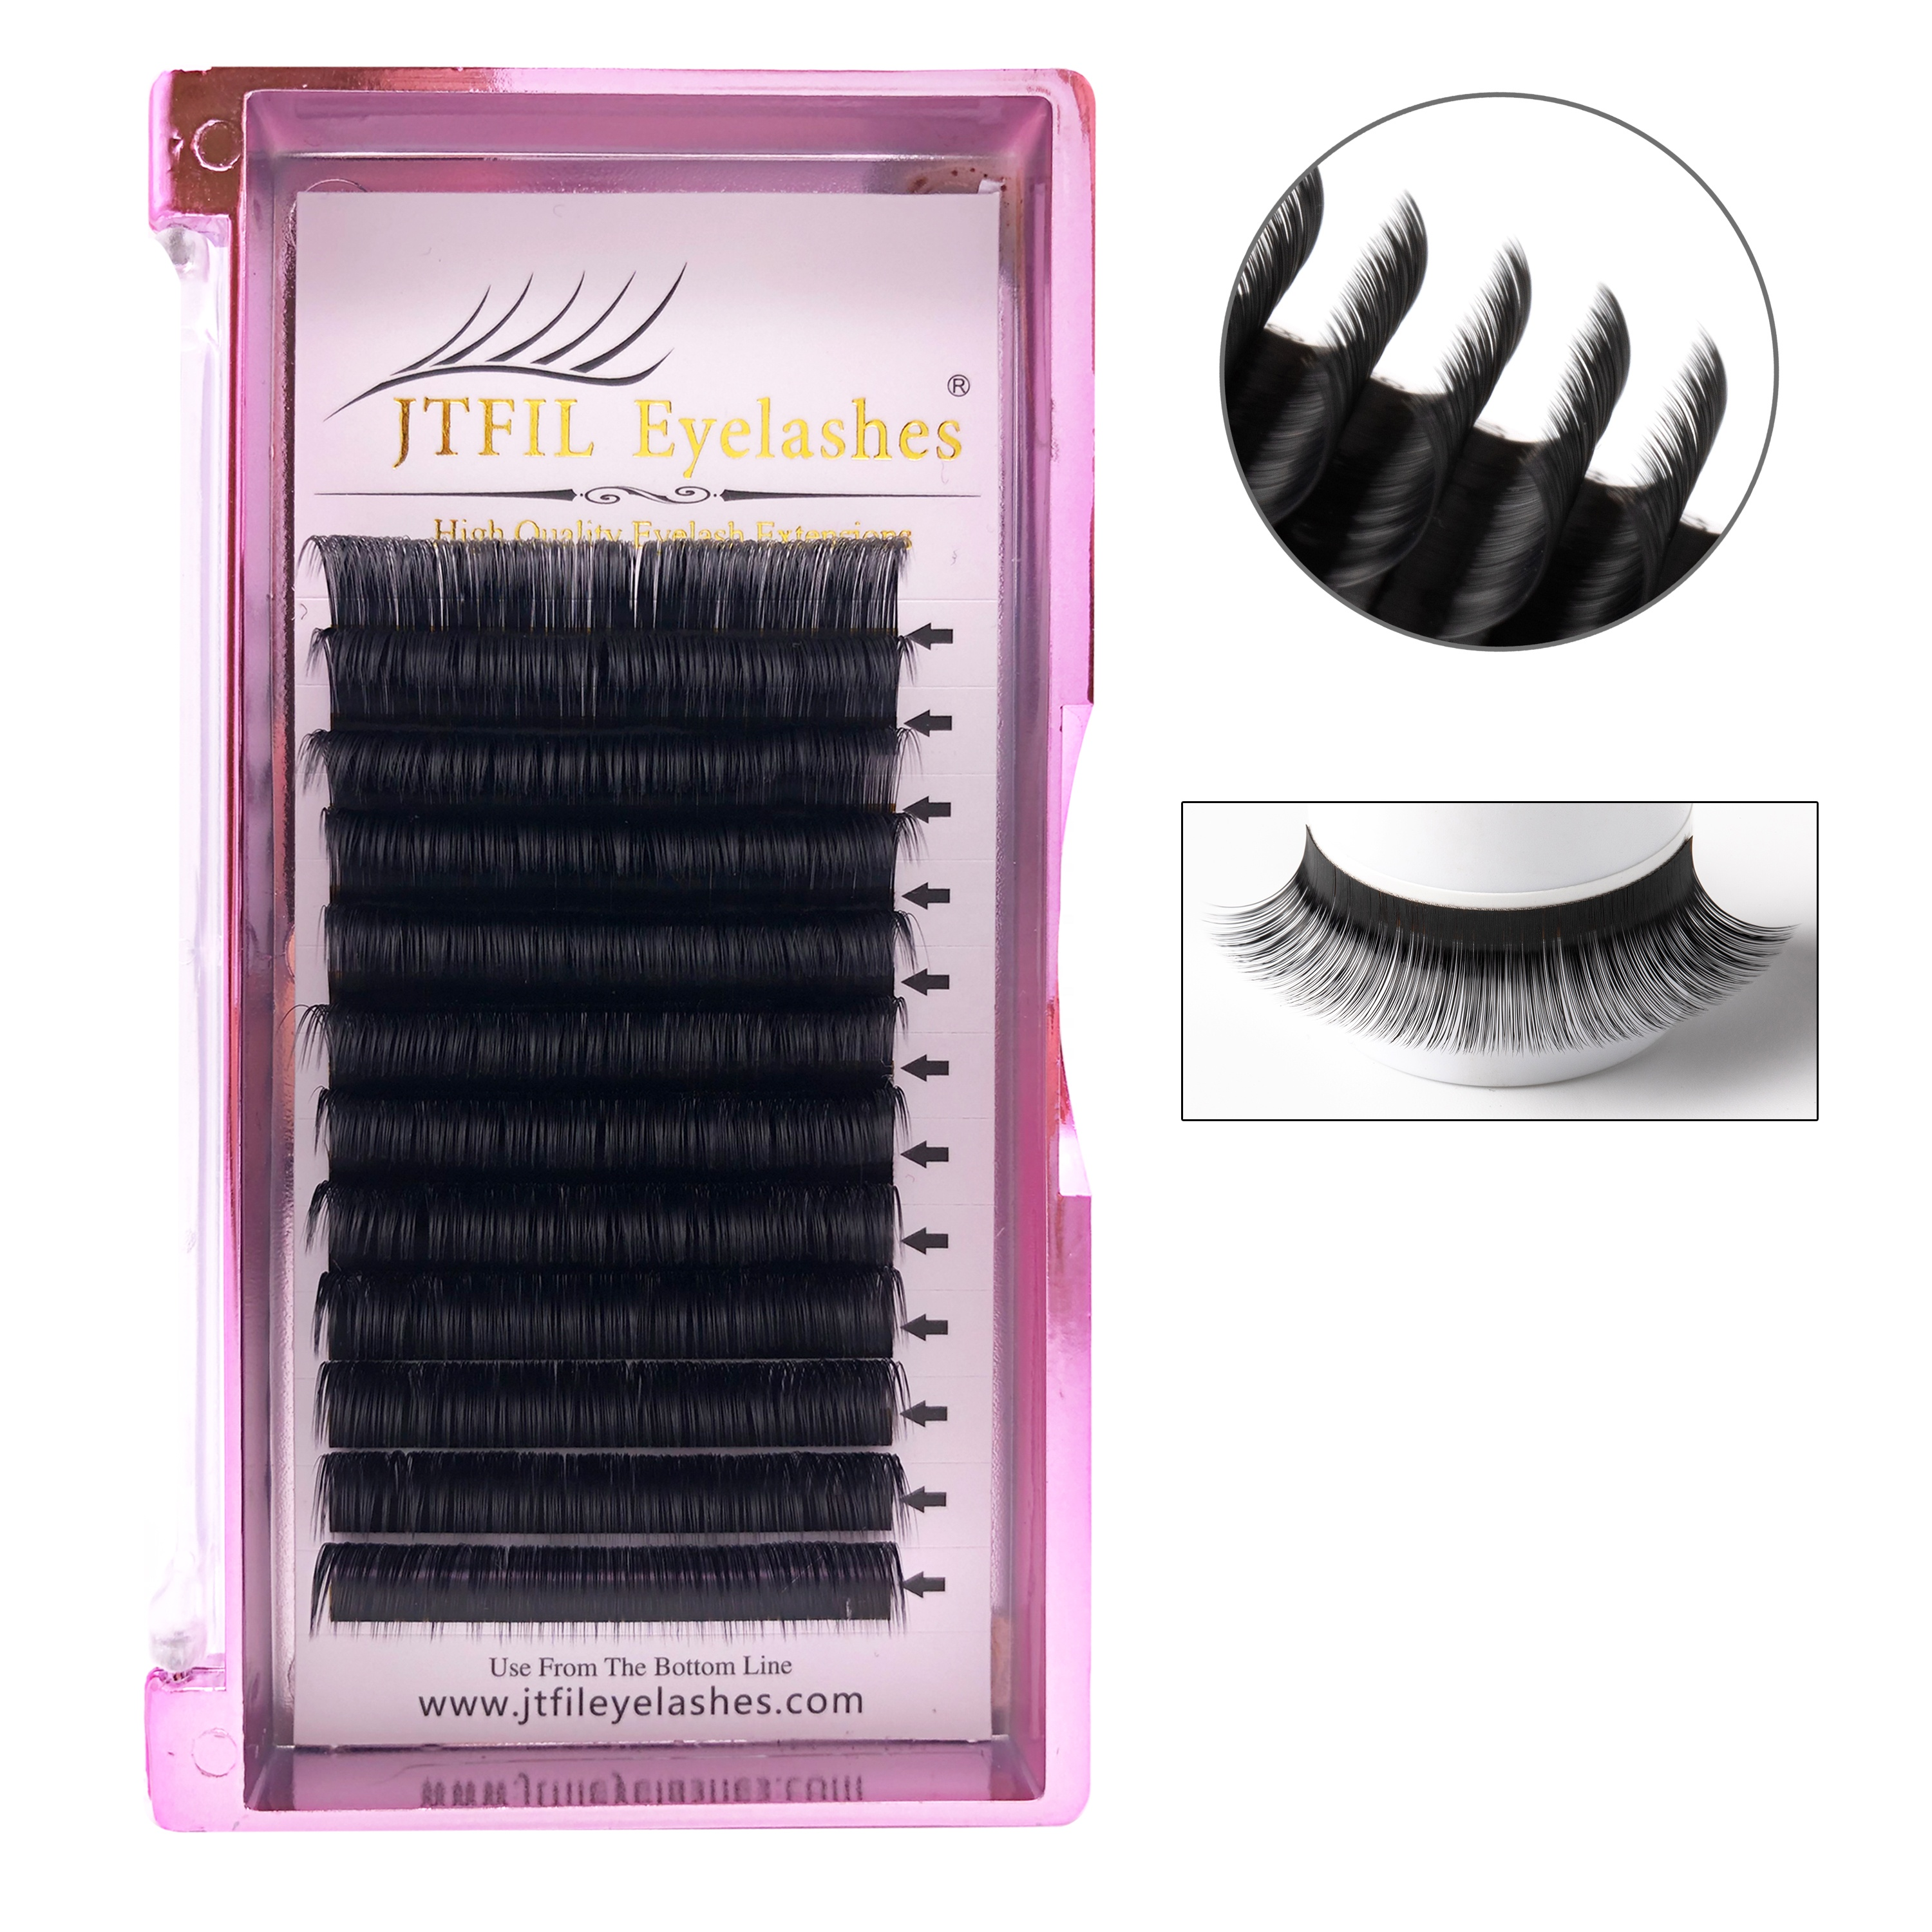 Wholesale Price <strong>J</strong> B C CC D DD L LC LD Curl All Size For Premium Eyelash Extension